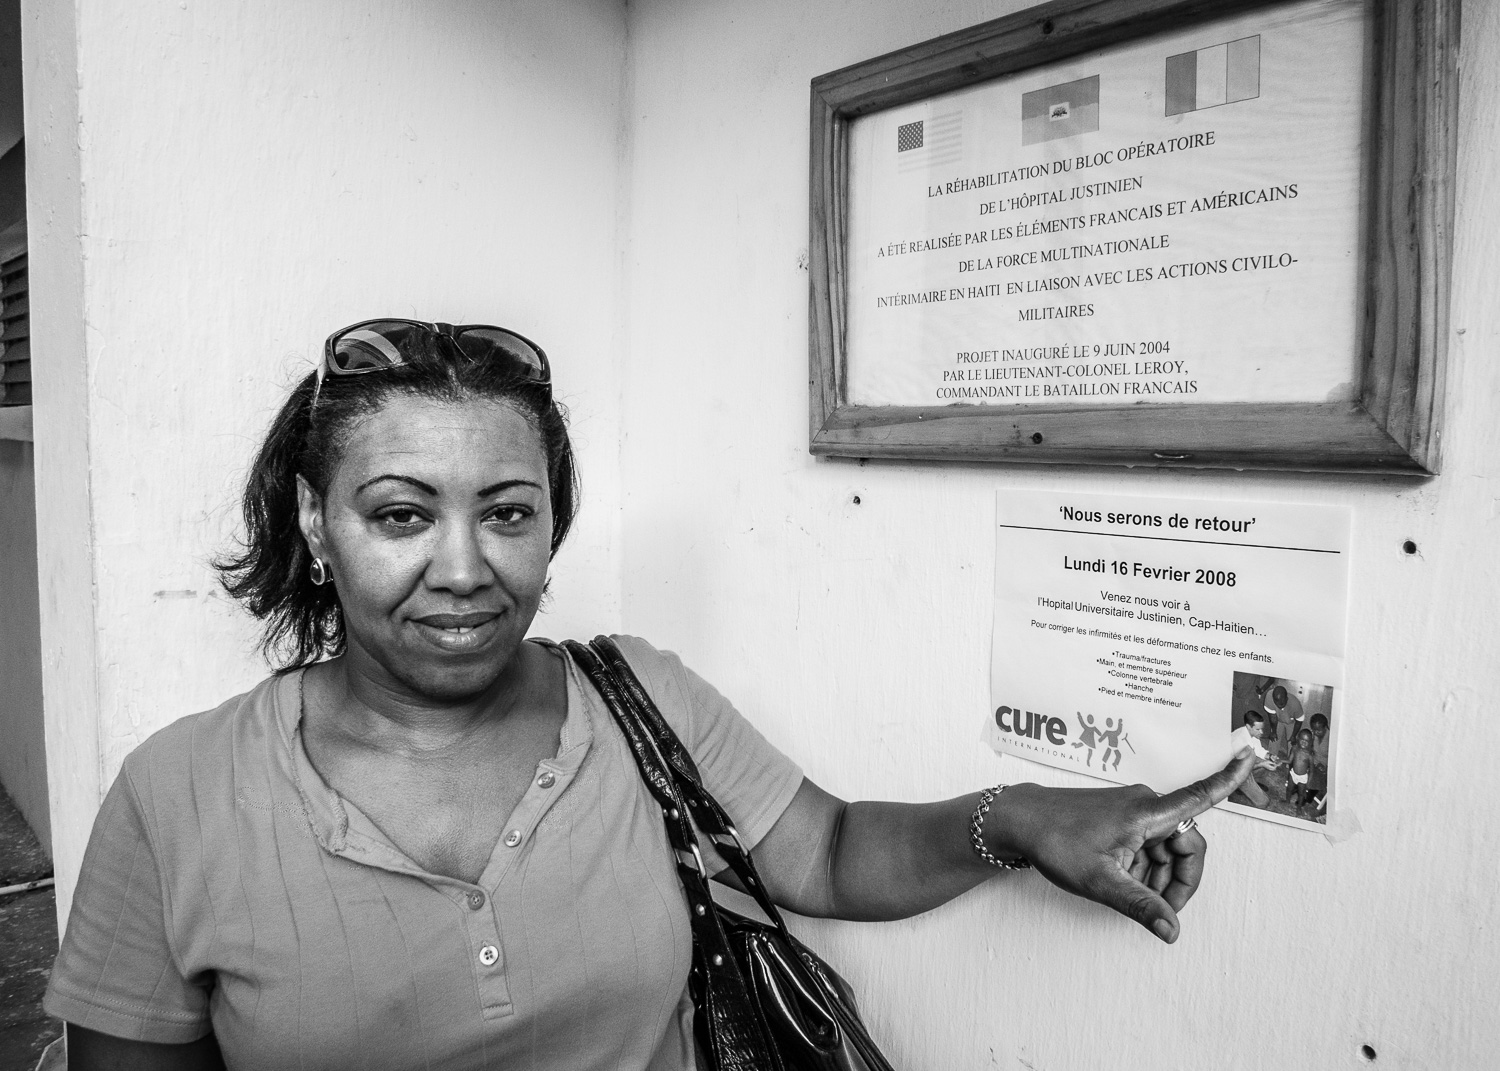 Nurse extraordinaire, Lucia from the DR, points to a sign advertising the arrival of the team.